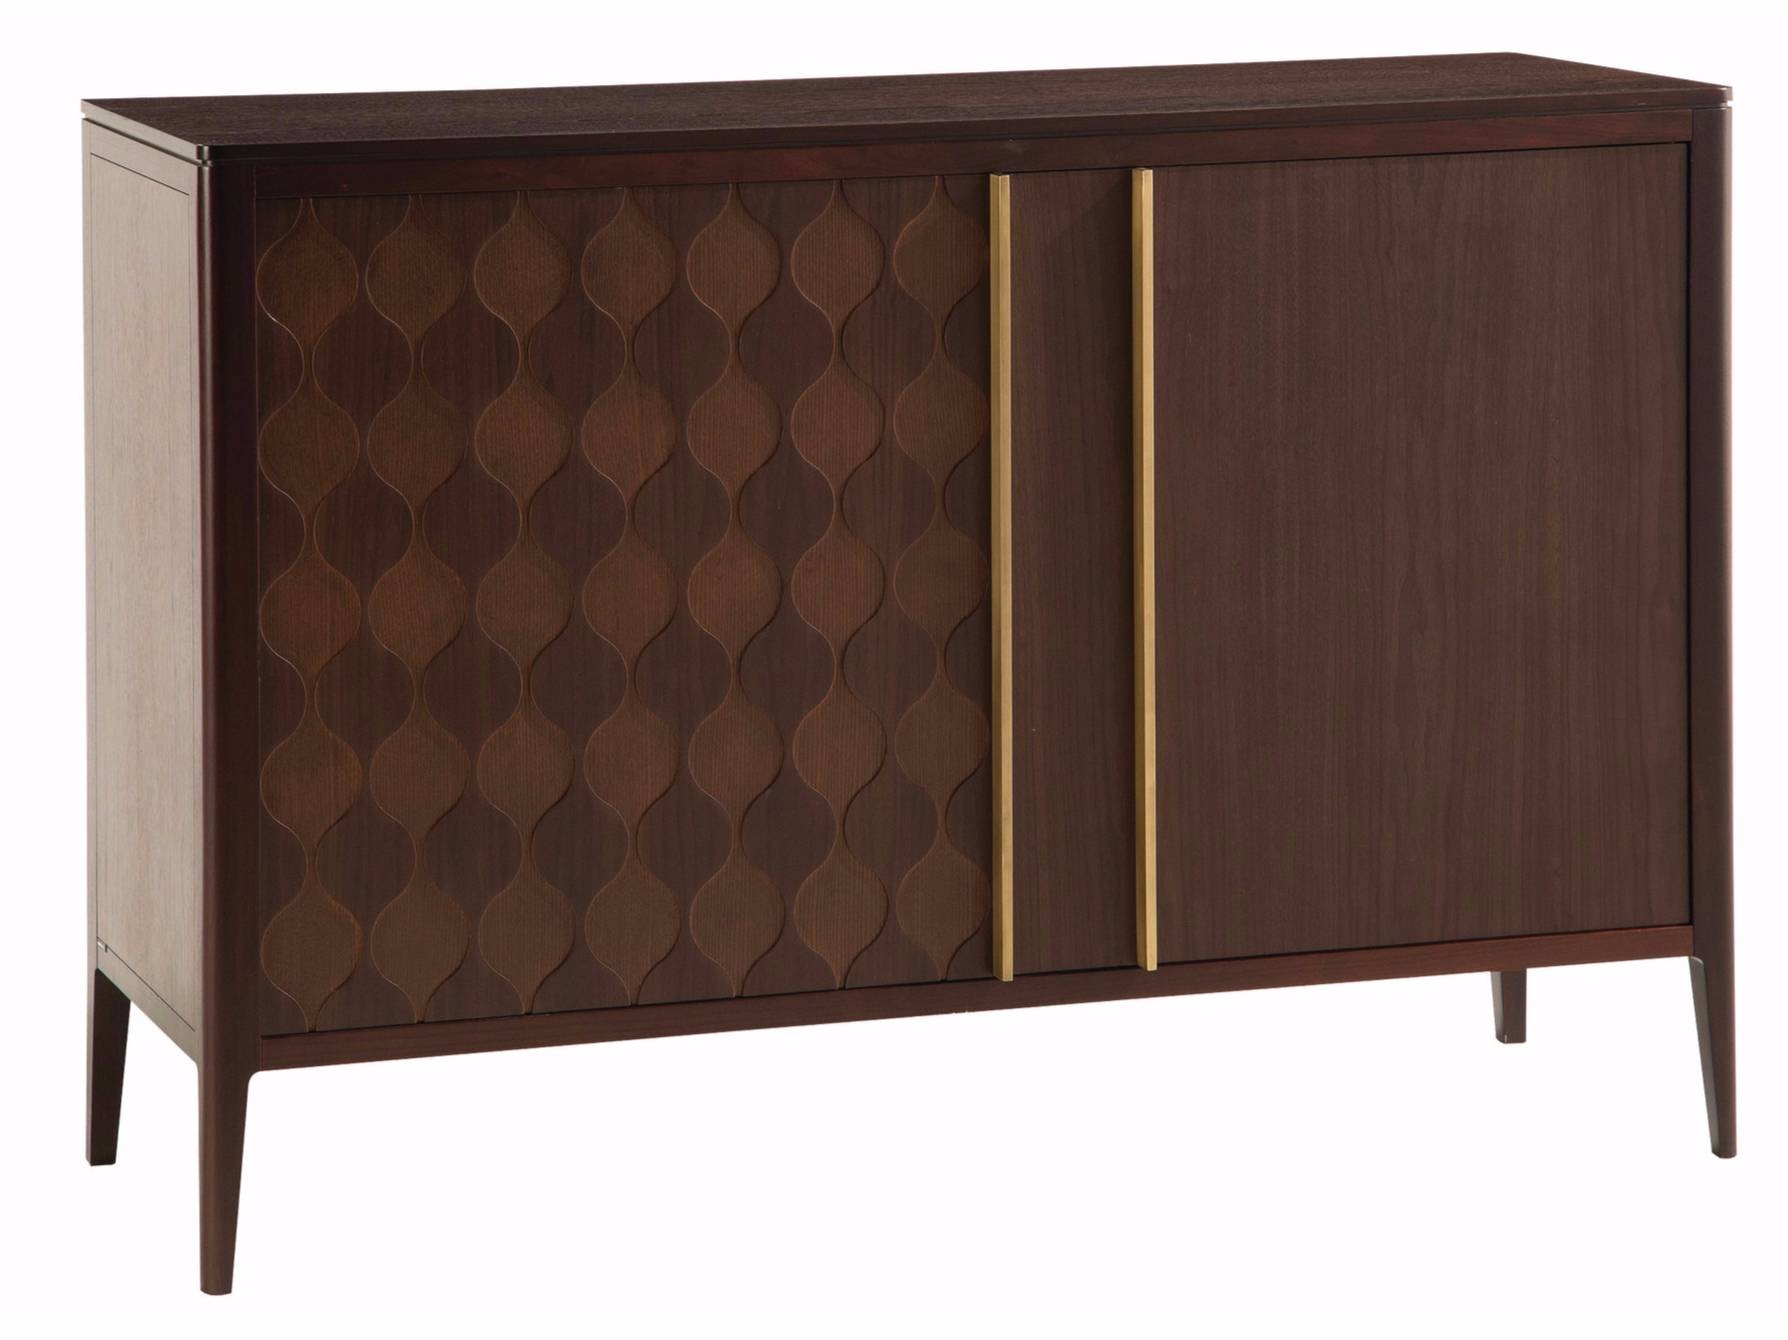 Repertoire | Sideboardroche Bobois with regard to Roche Bobois Sideboards (Image 7 of 15)